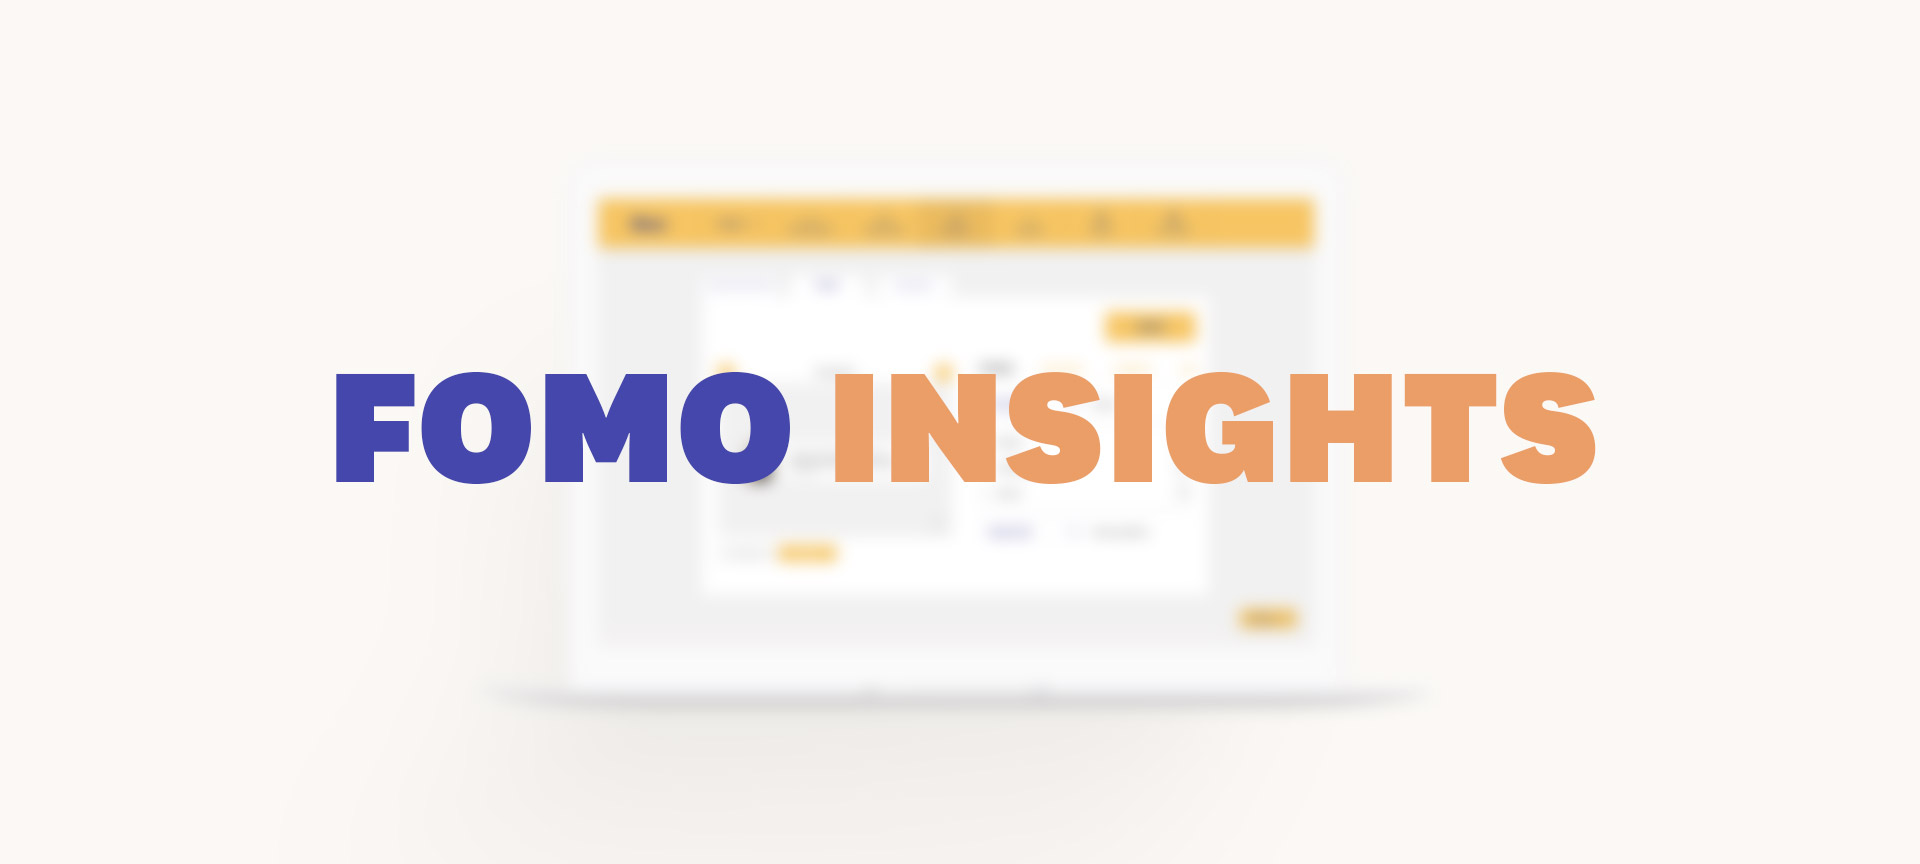 Introducing Fomo Insights